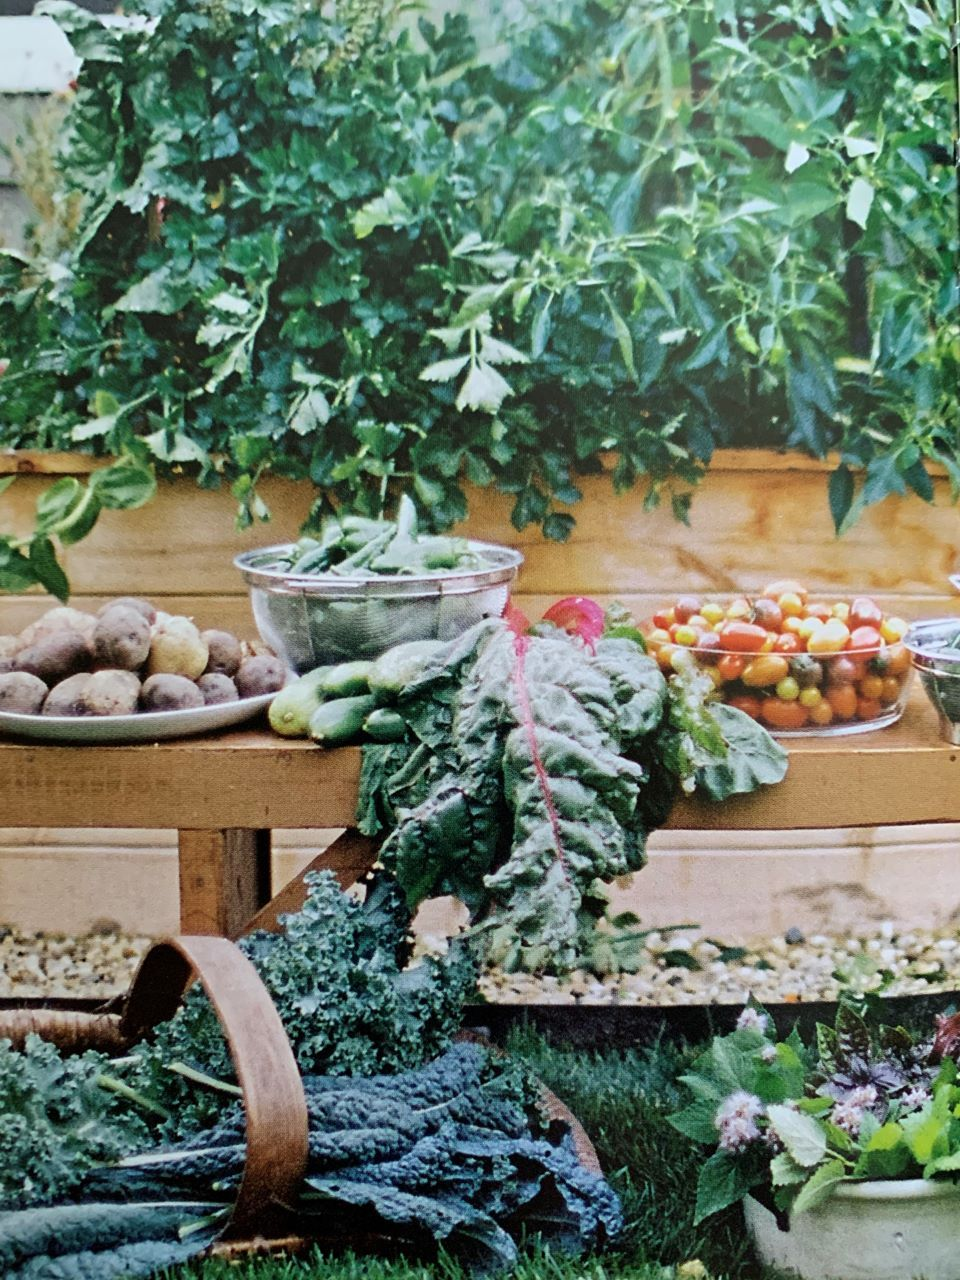 Kitchen Garden Revival Book shares garden crop